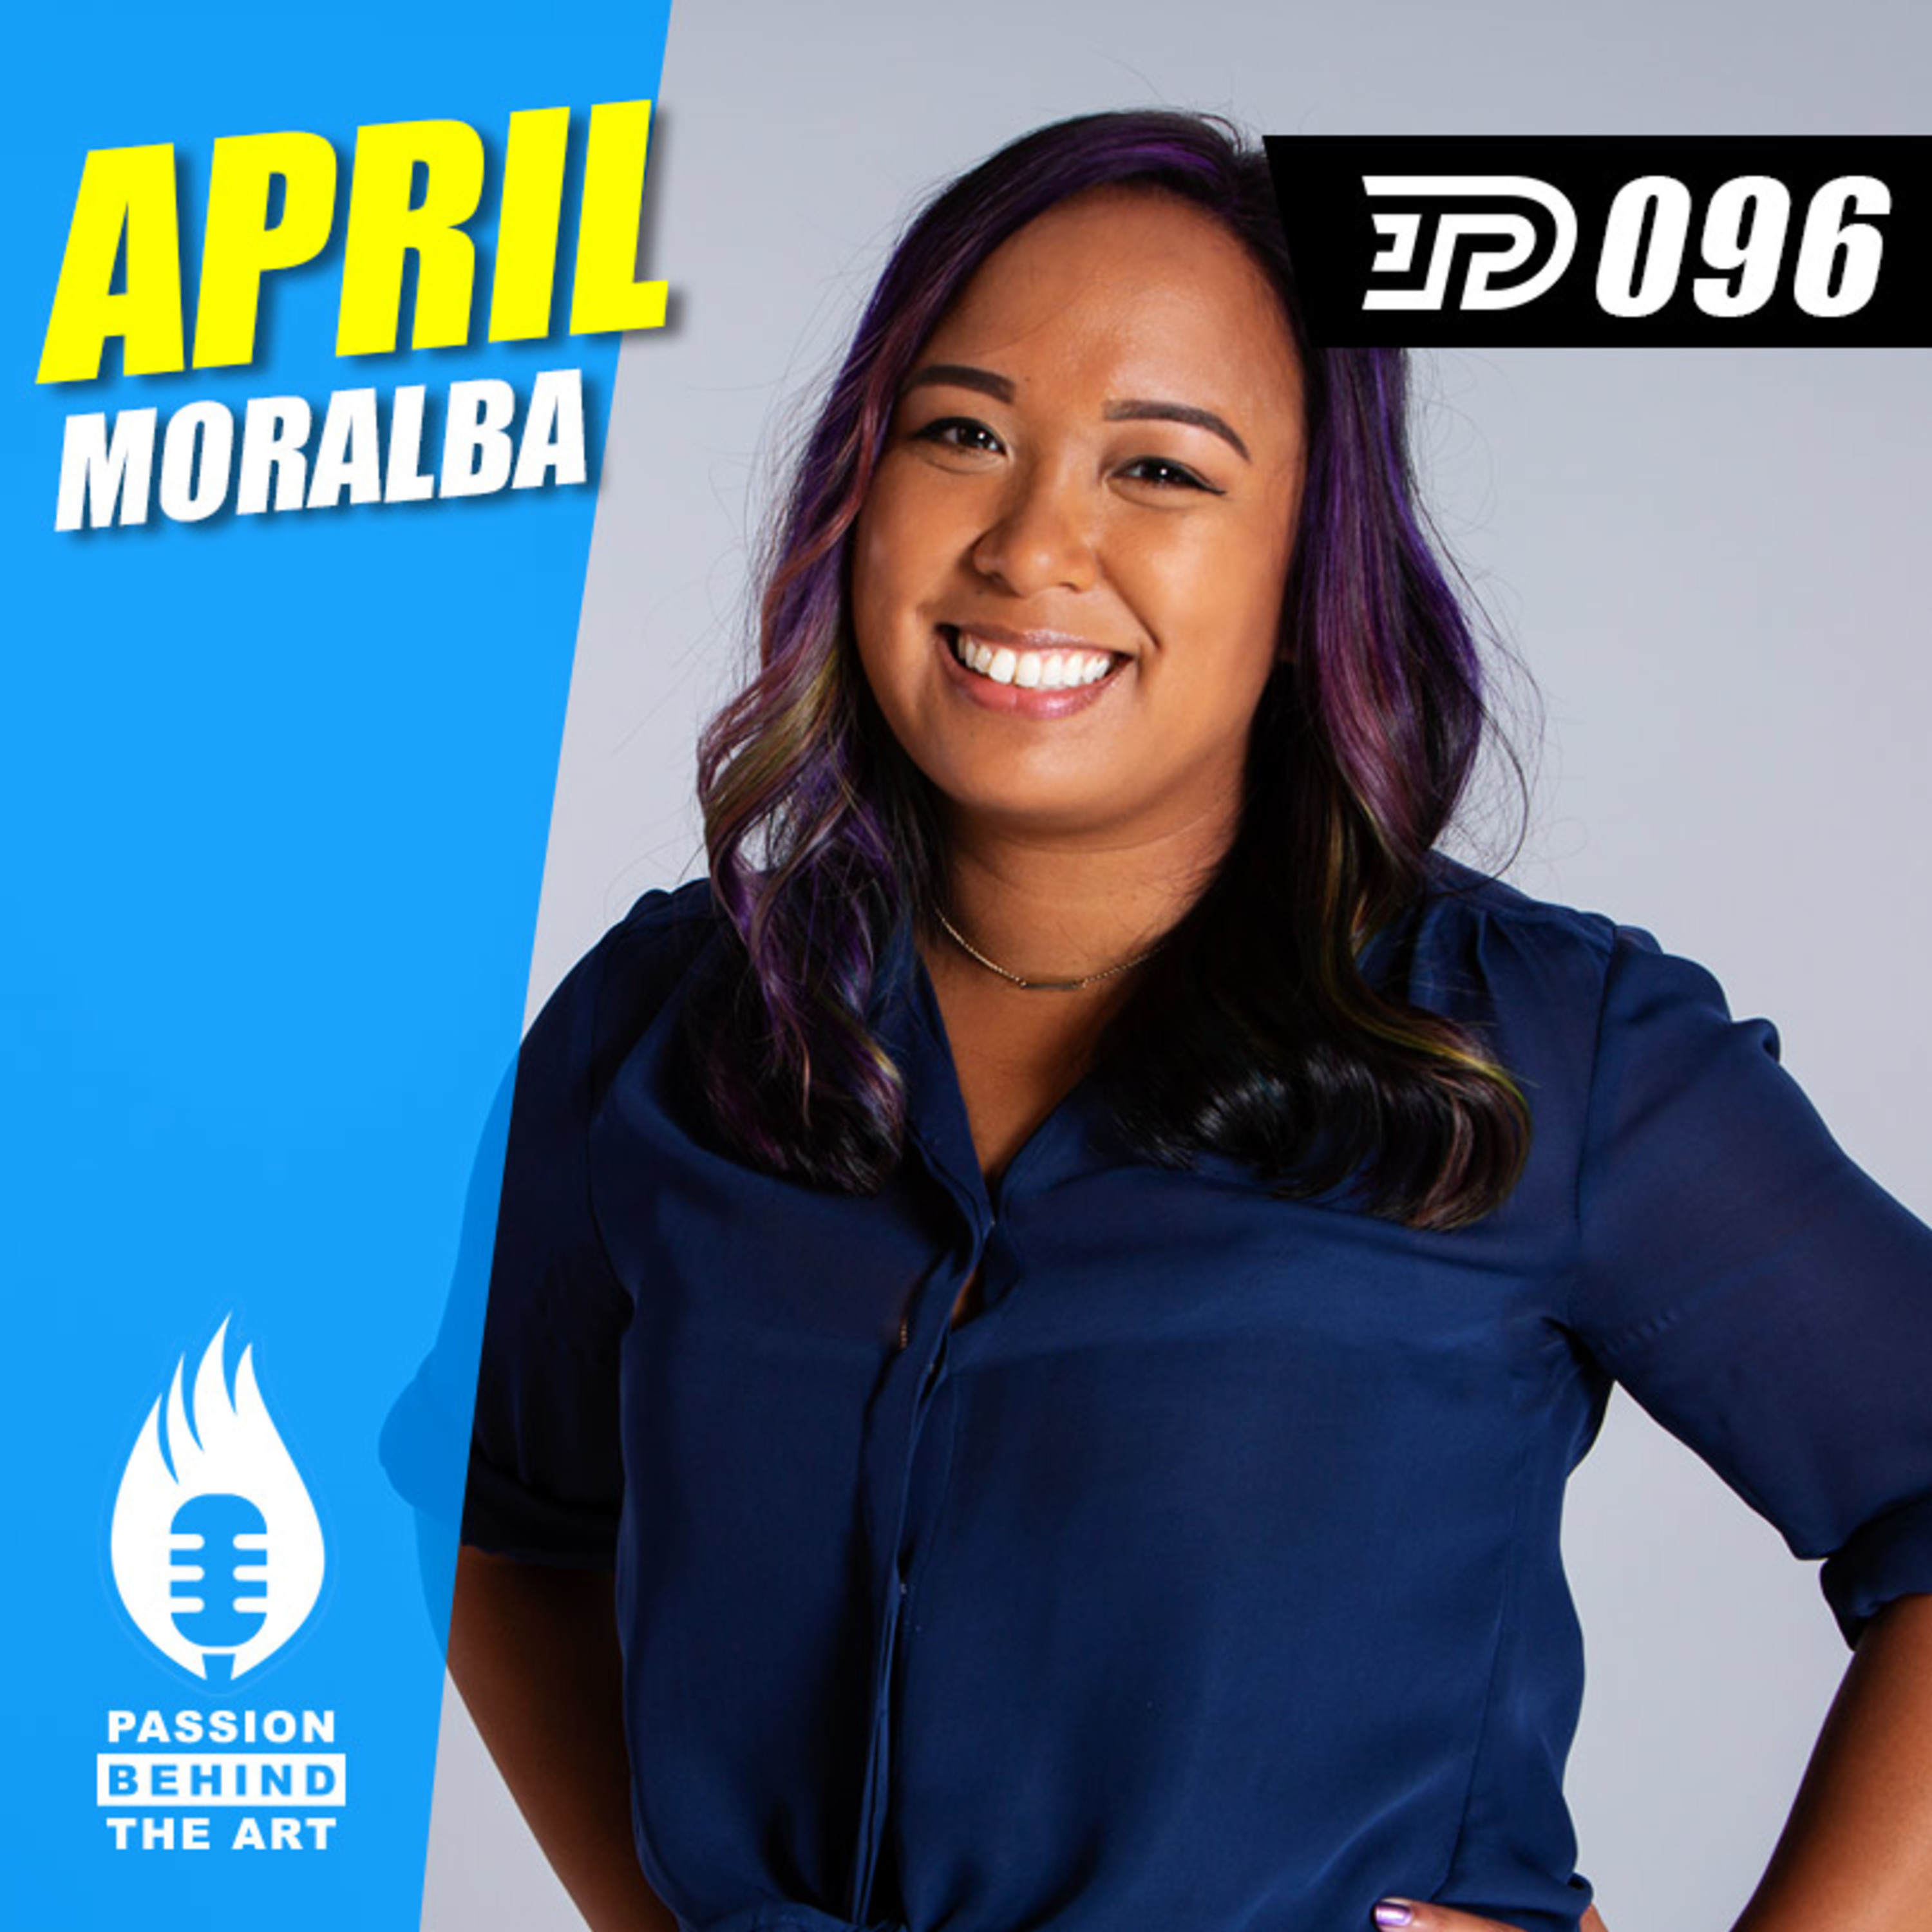 April Moralba - Show Up Every Day! | Passion Behind The Art 096